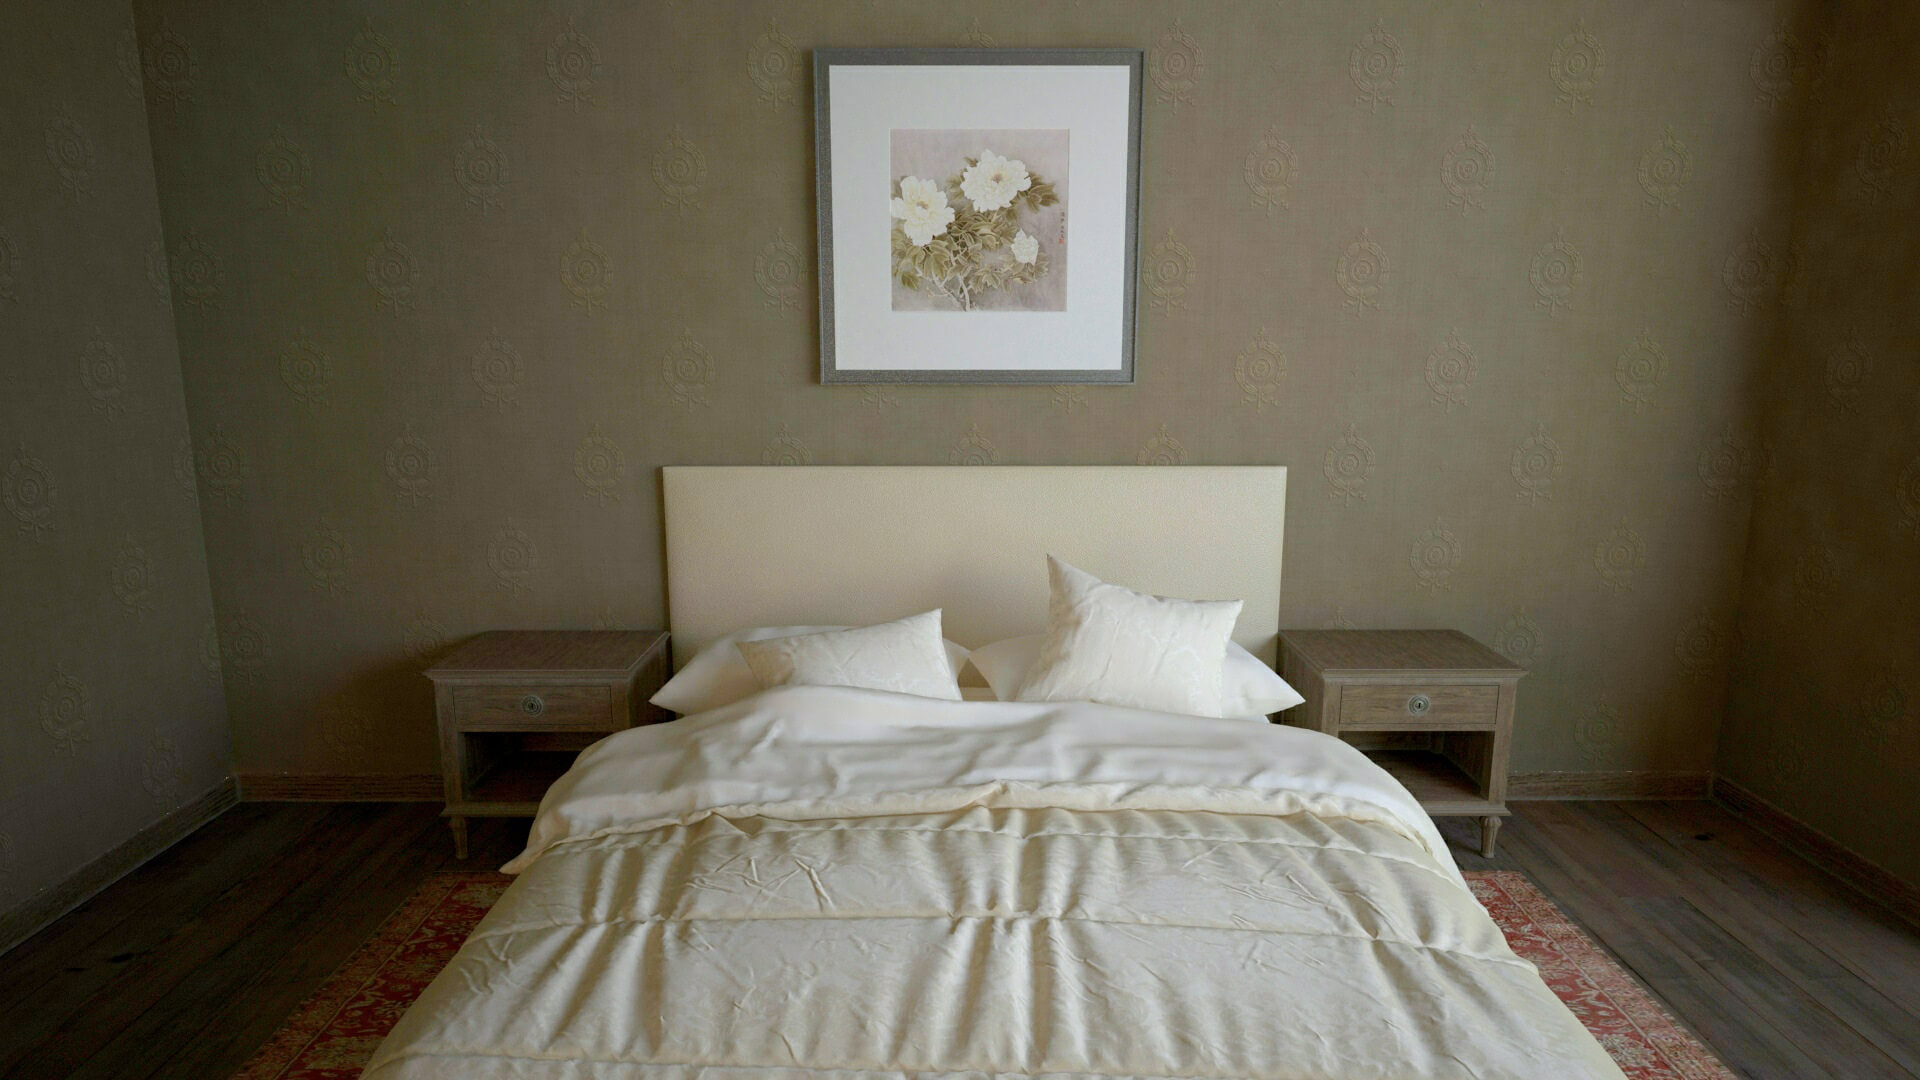 10 Simple Tips To Make Your Bedroom More Comfortable